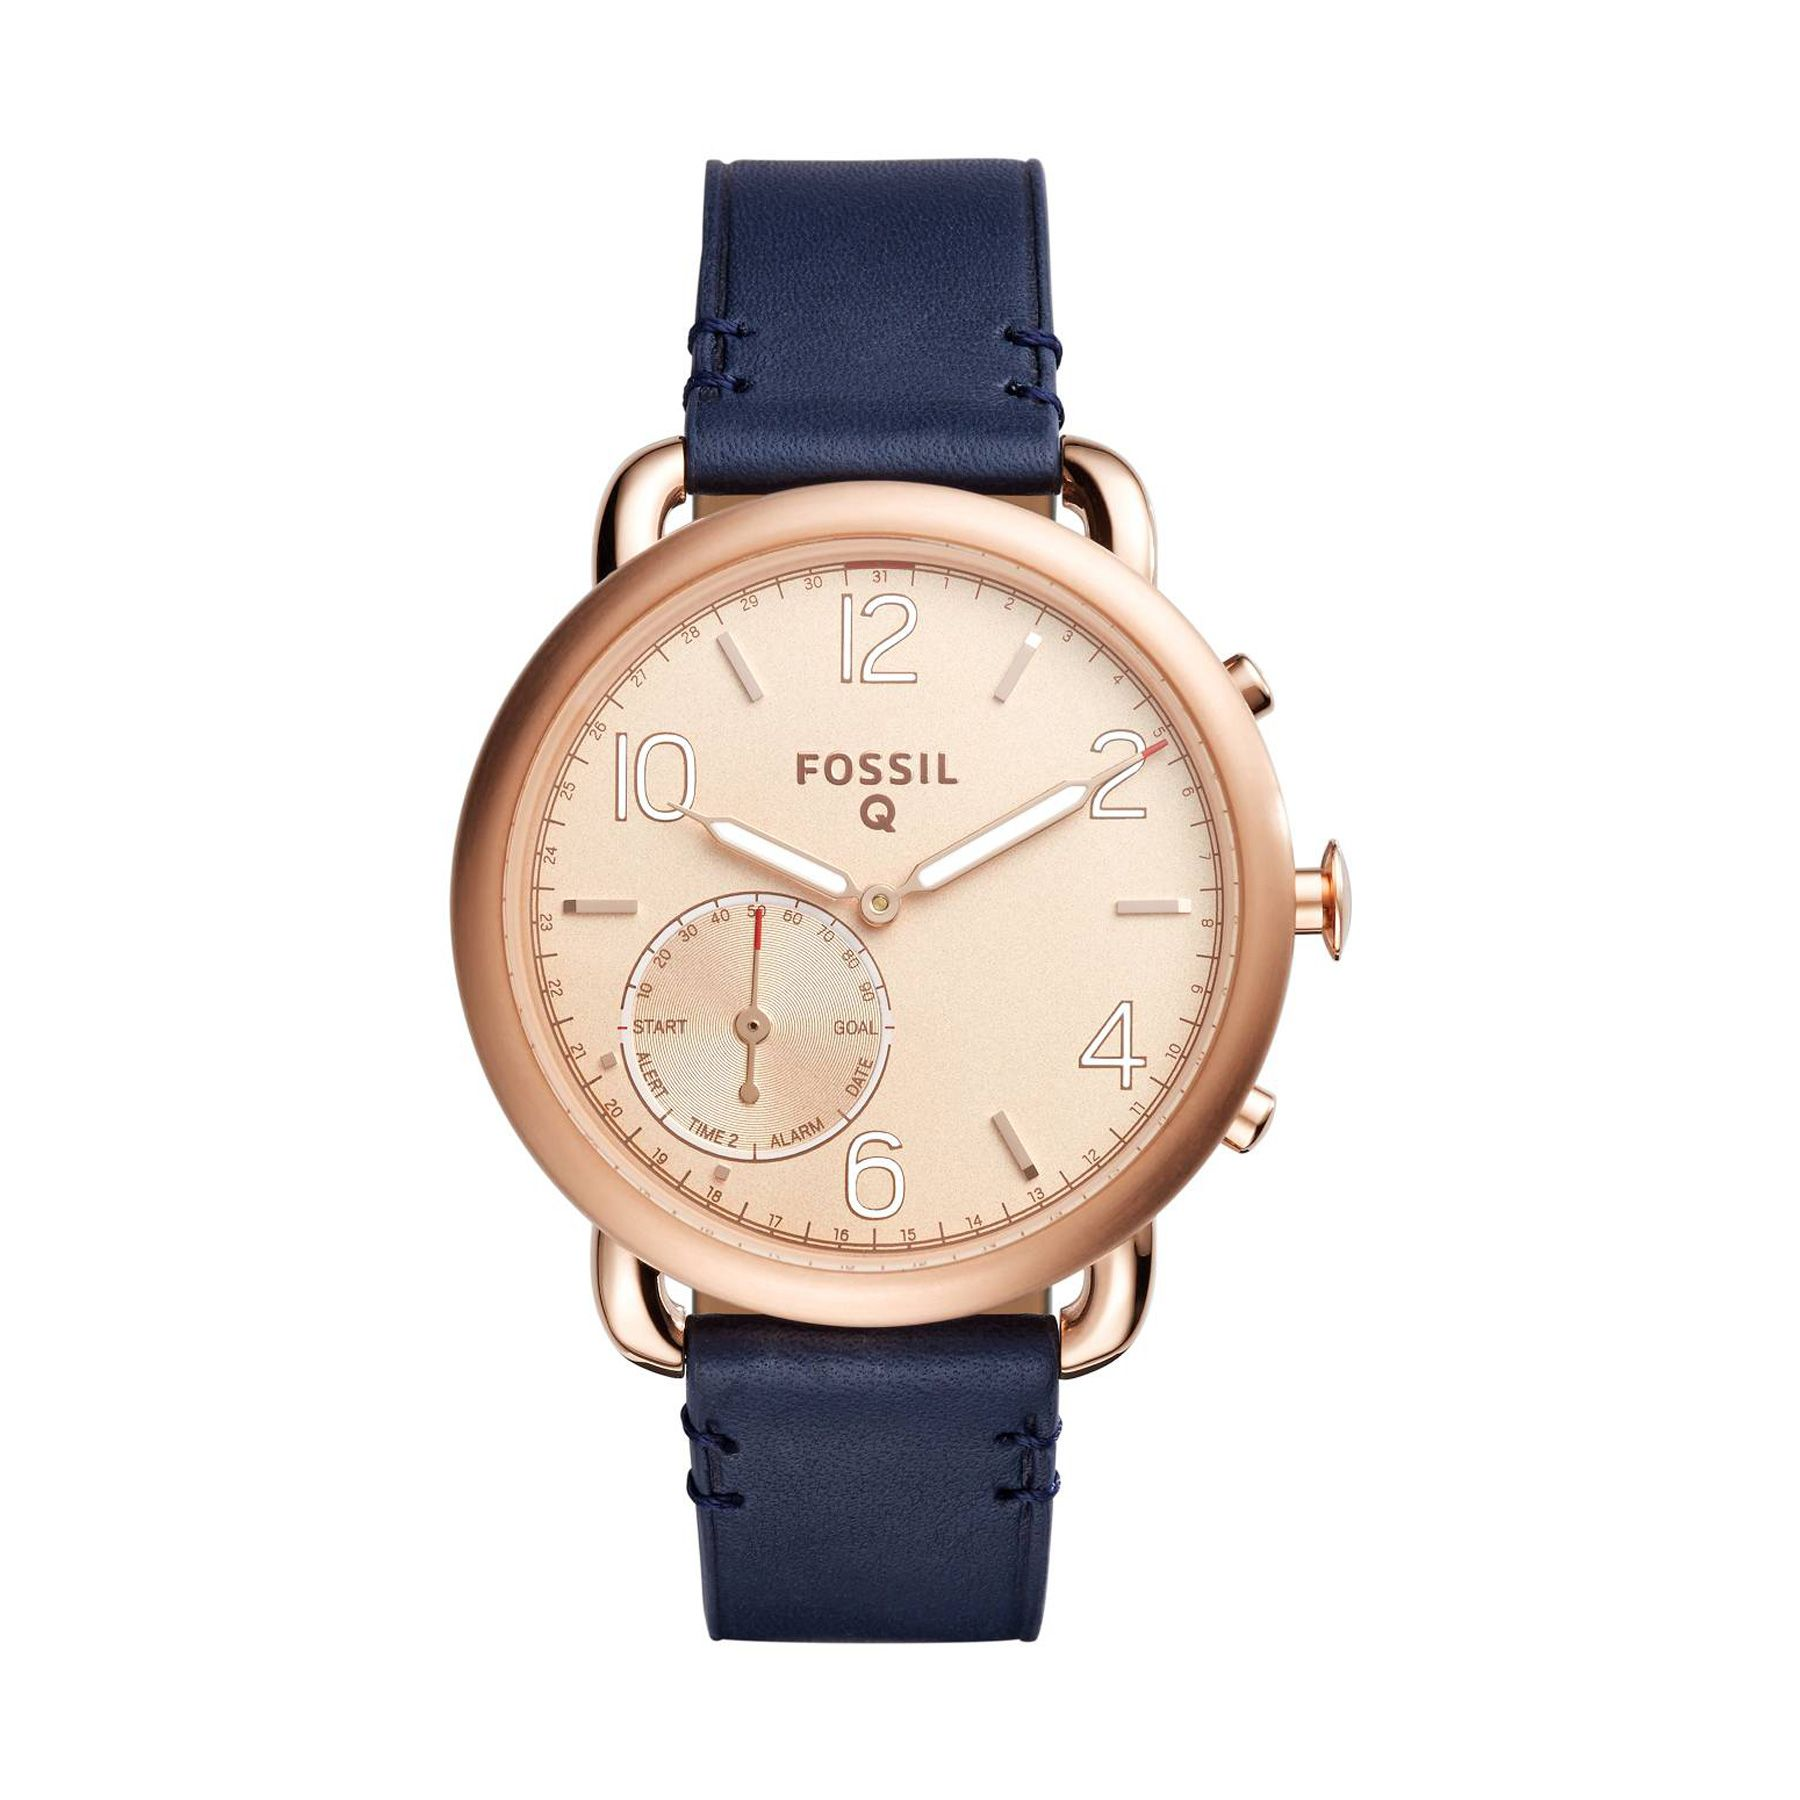 dd14982d024 FTW1128 - Fossil Tailor Smartwatch. FTW1128 - Fossil Tailor Smartwatch Relógio  Fossil